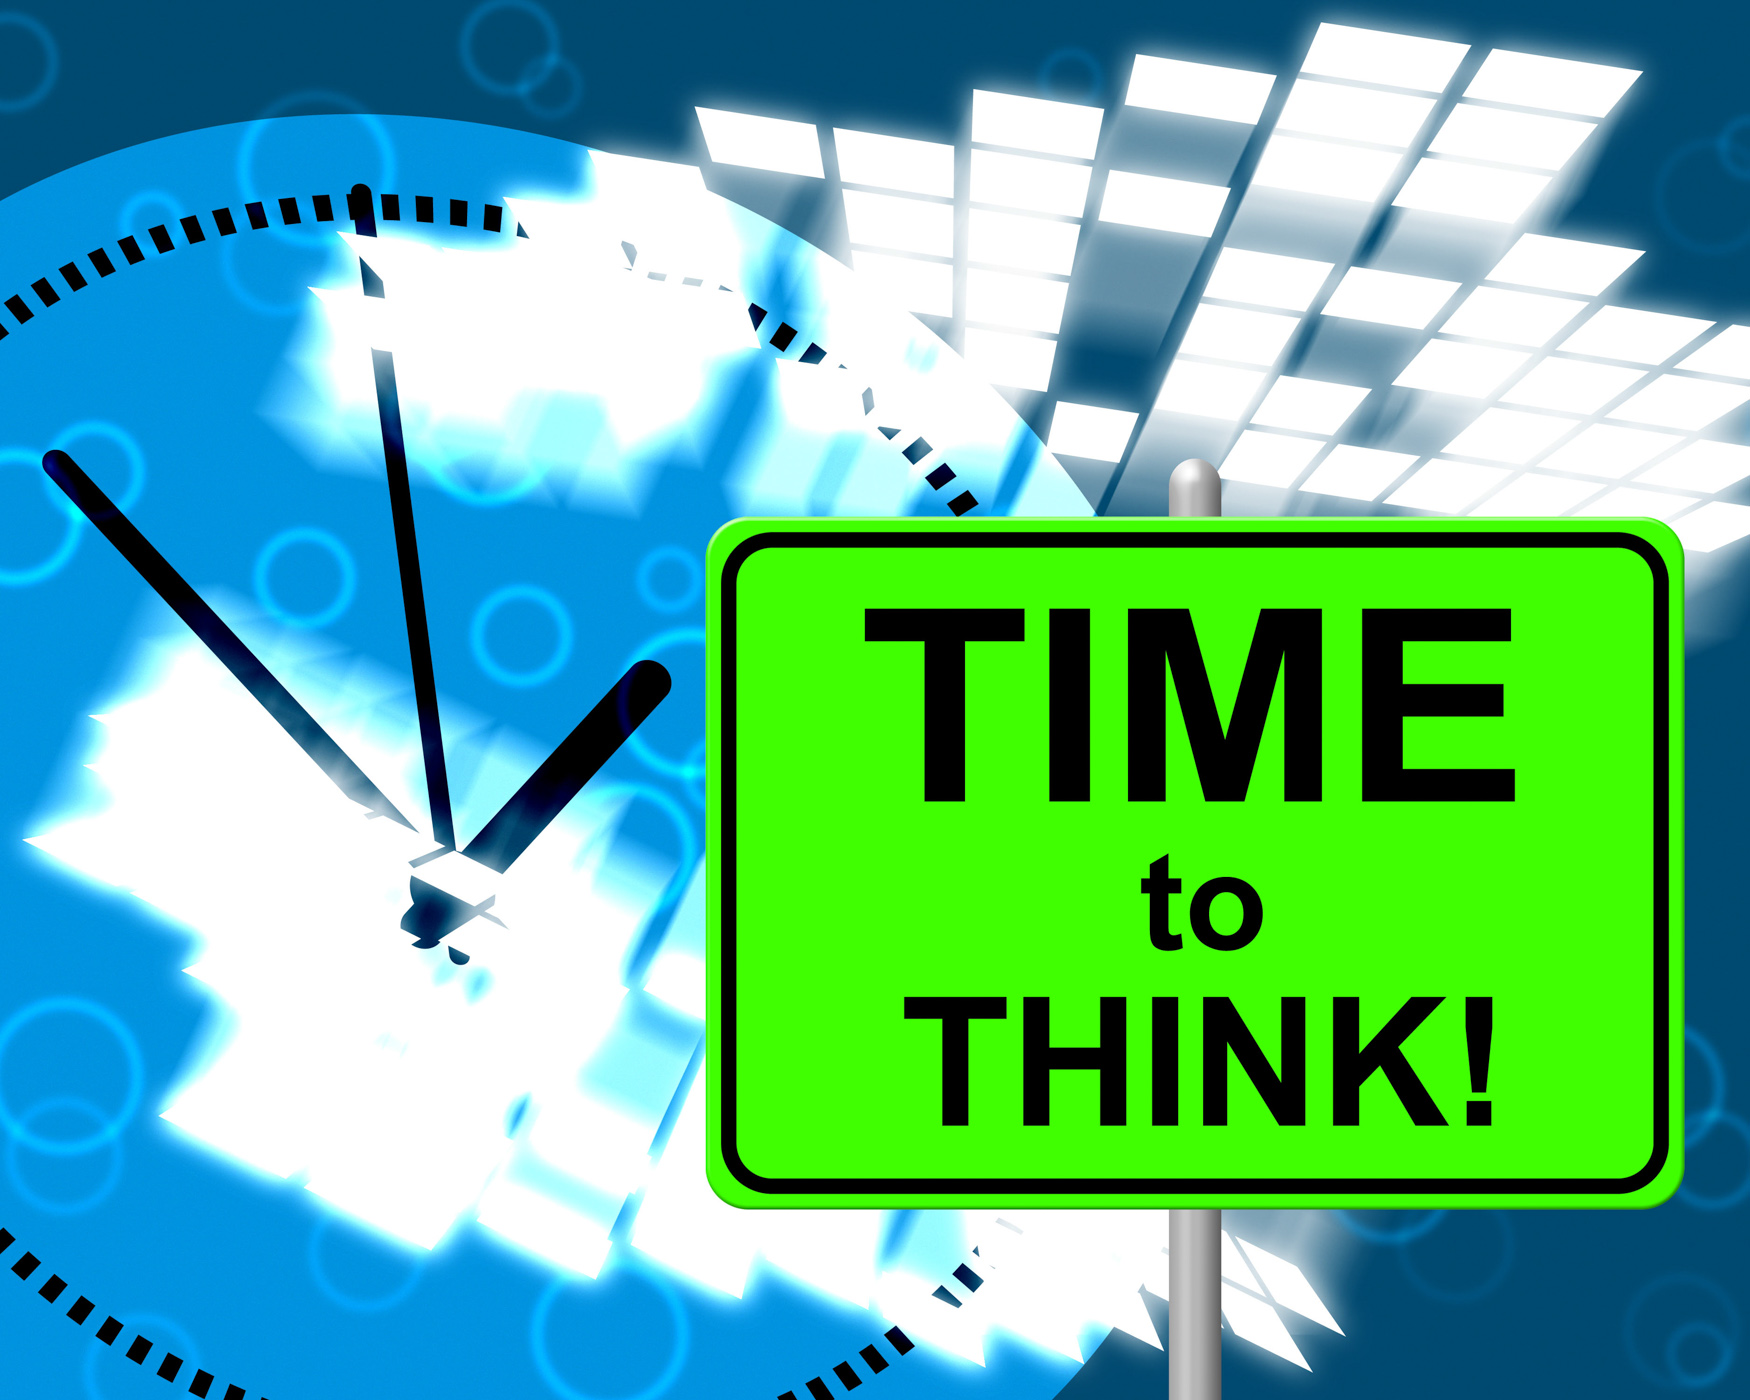 Time To Think Represents At Present And Consider, About, Justnow, Thinking, Thinkaboutit, HQ Photo